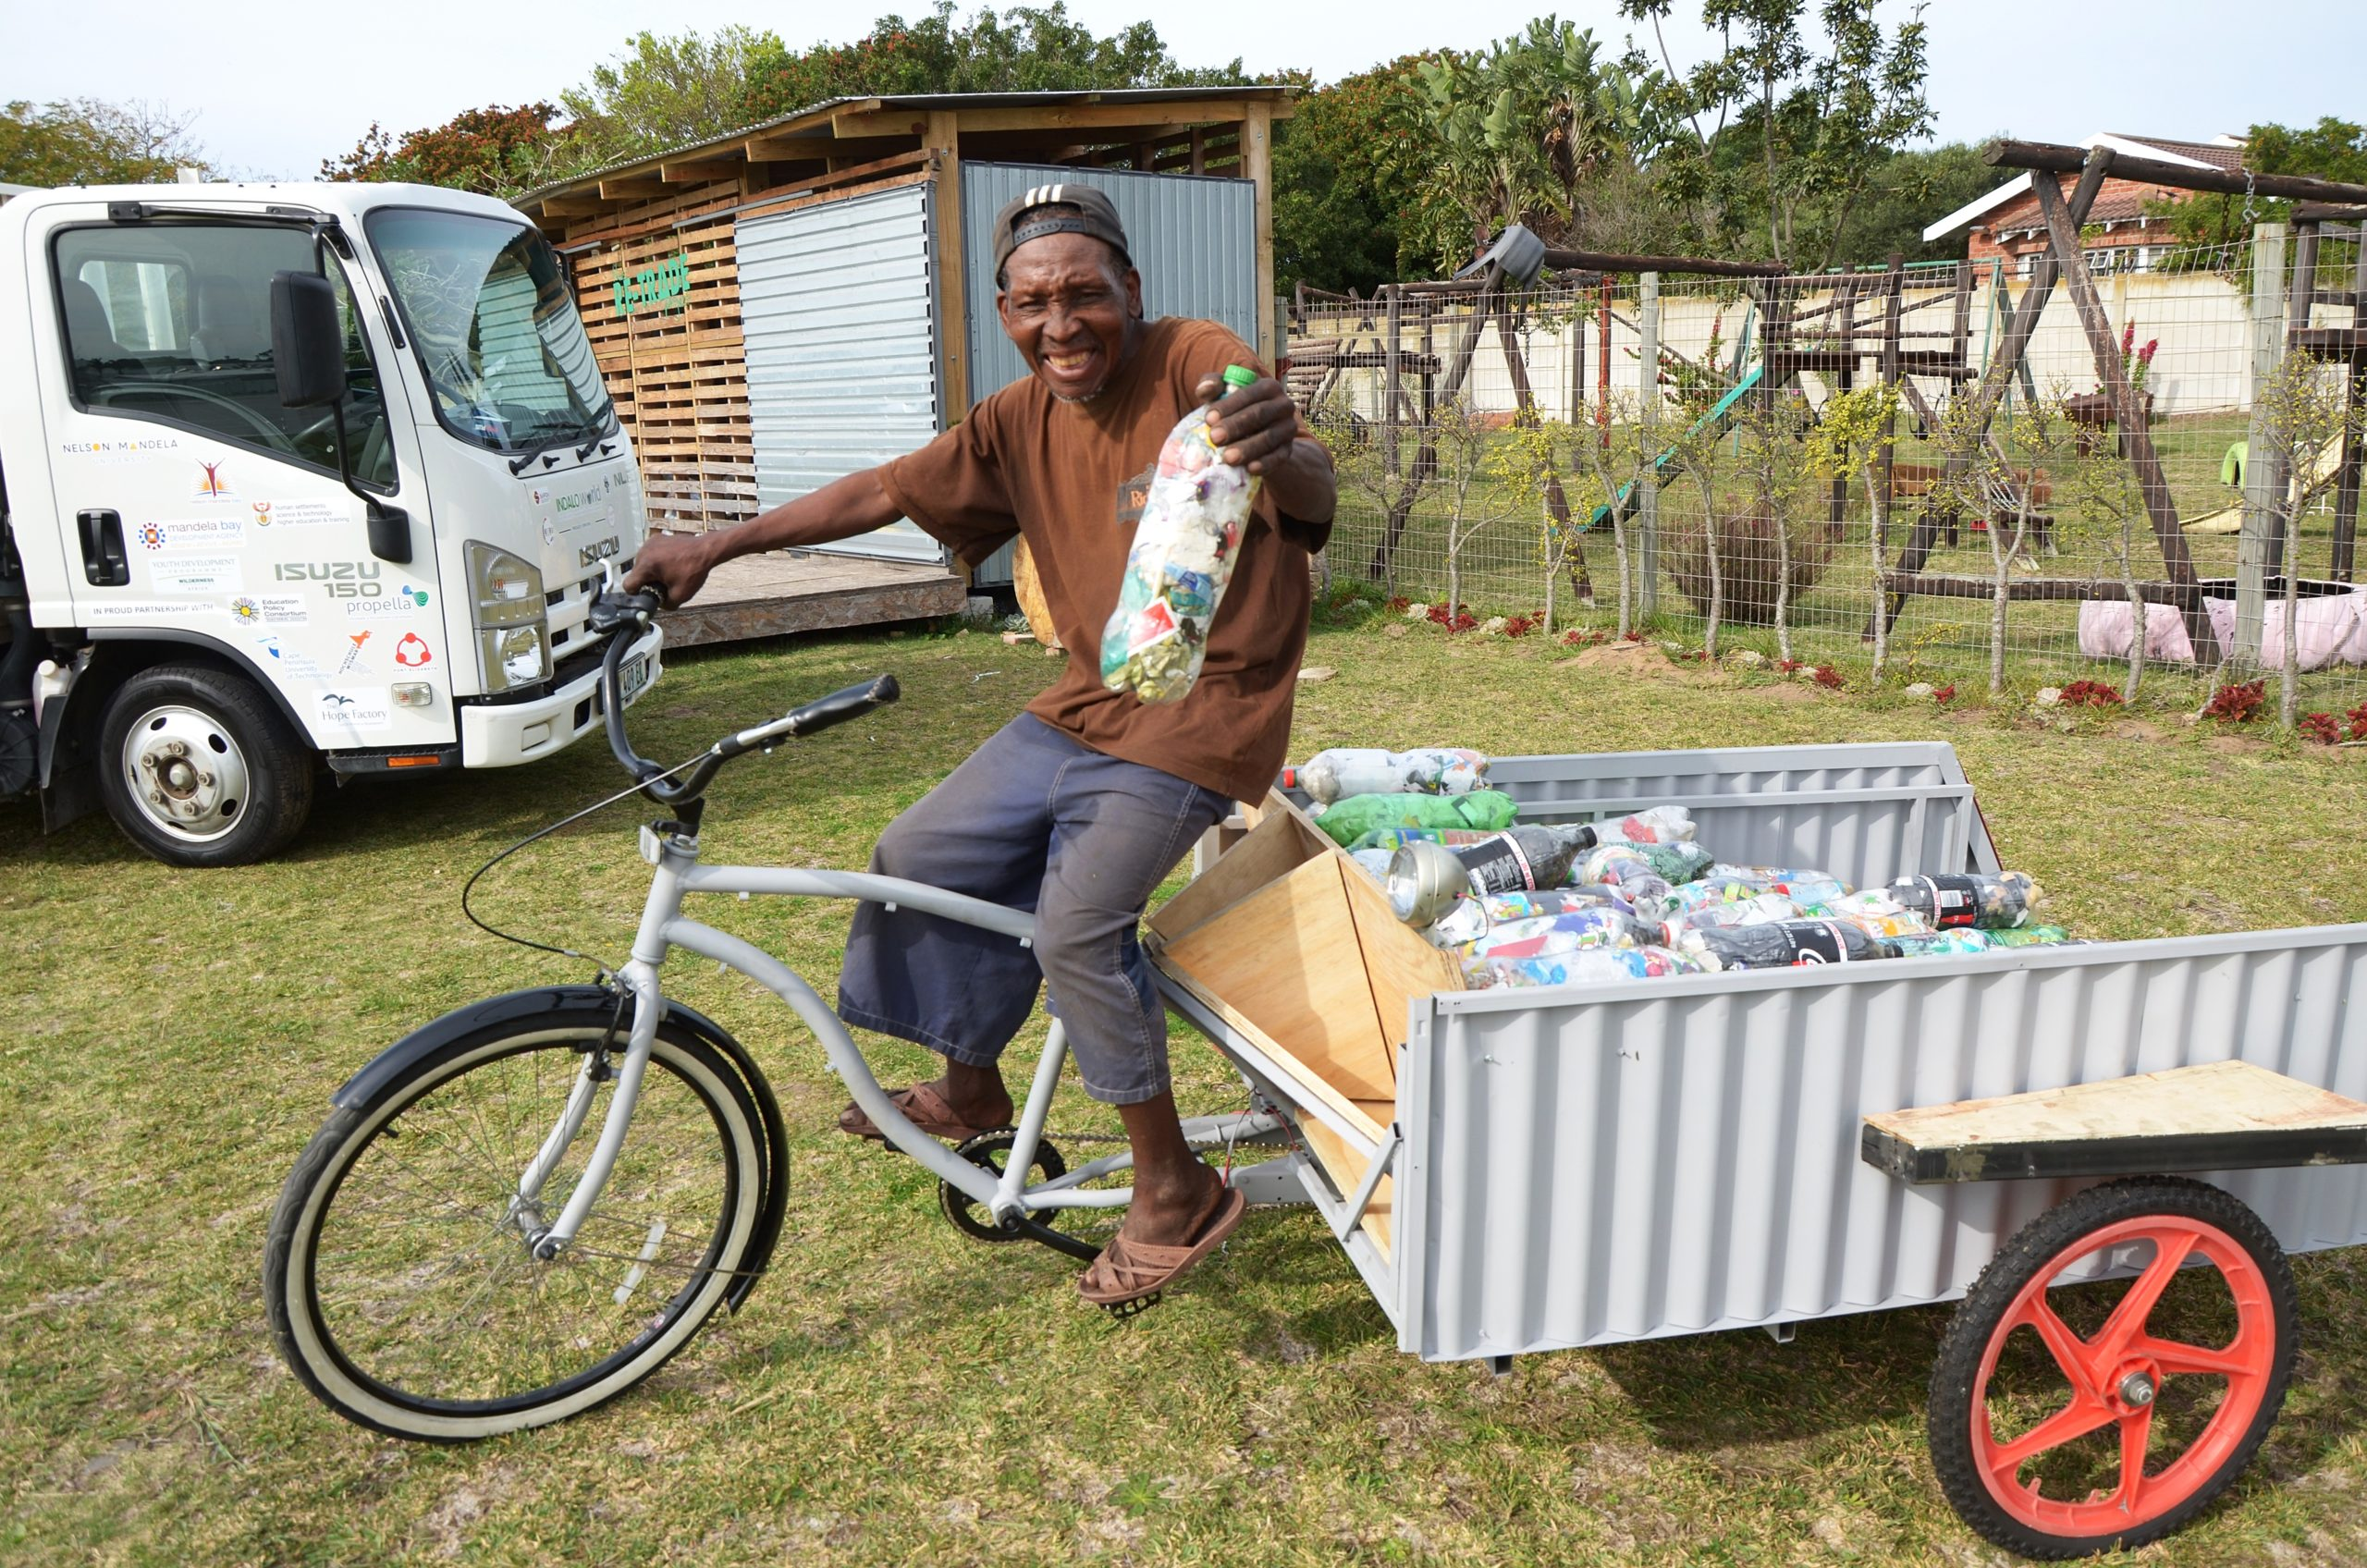 Khululekile 'Wilson' Moko tries out his new mode of transport which was built out of waste material donated by Isuzu Motors South Africa.